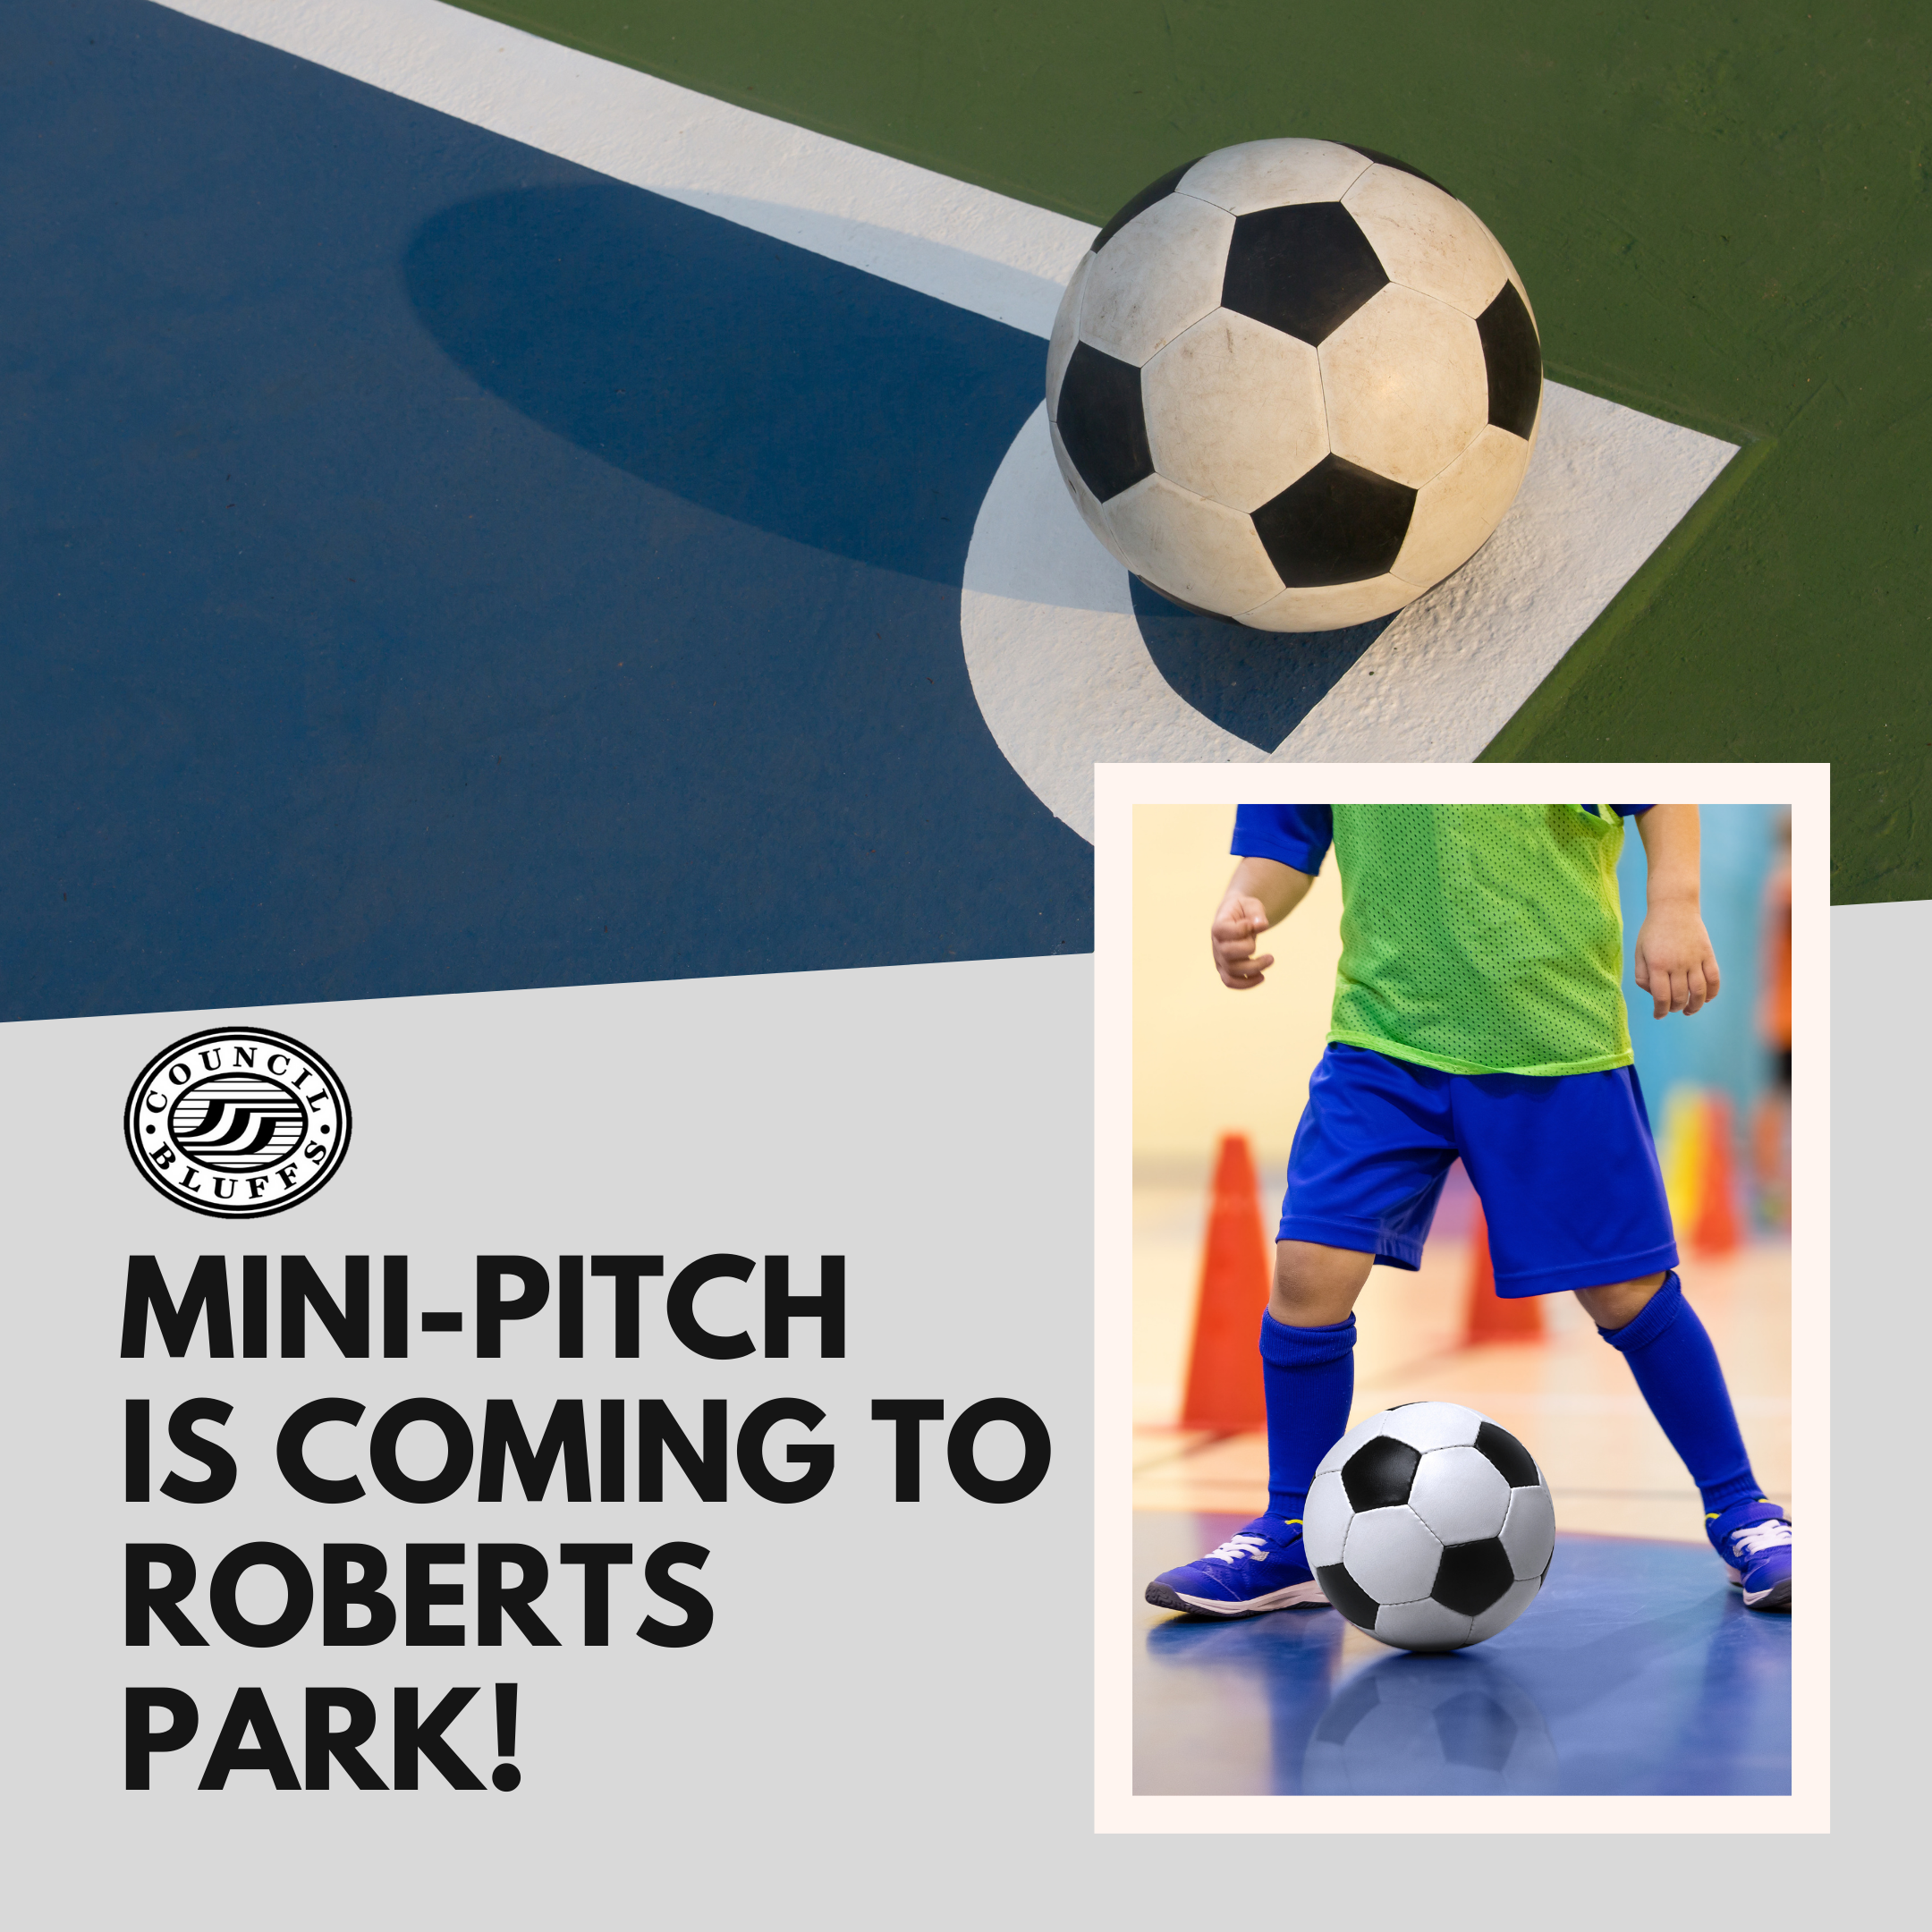 mini pitch at roberts park